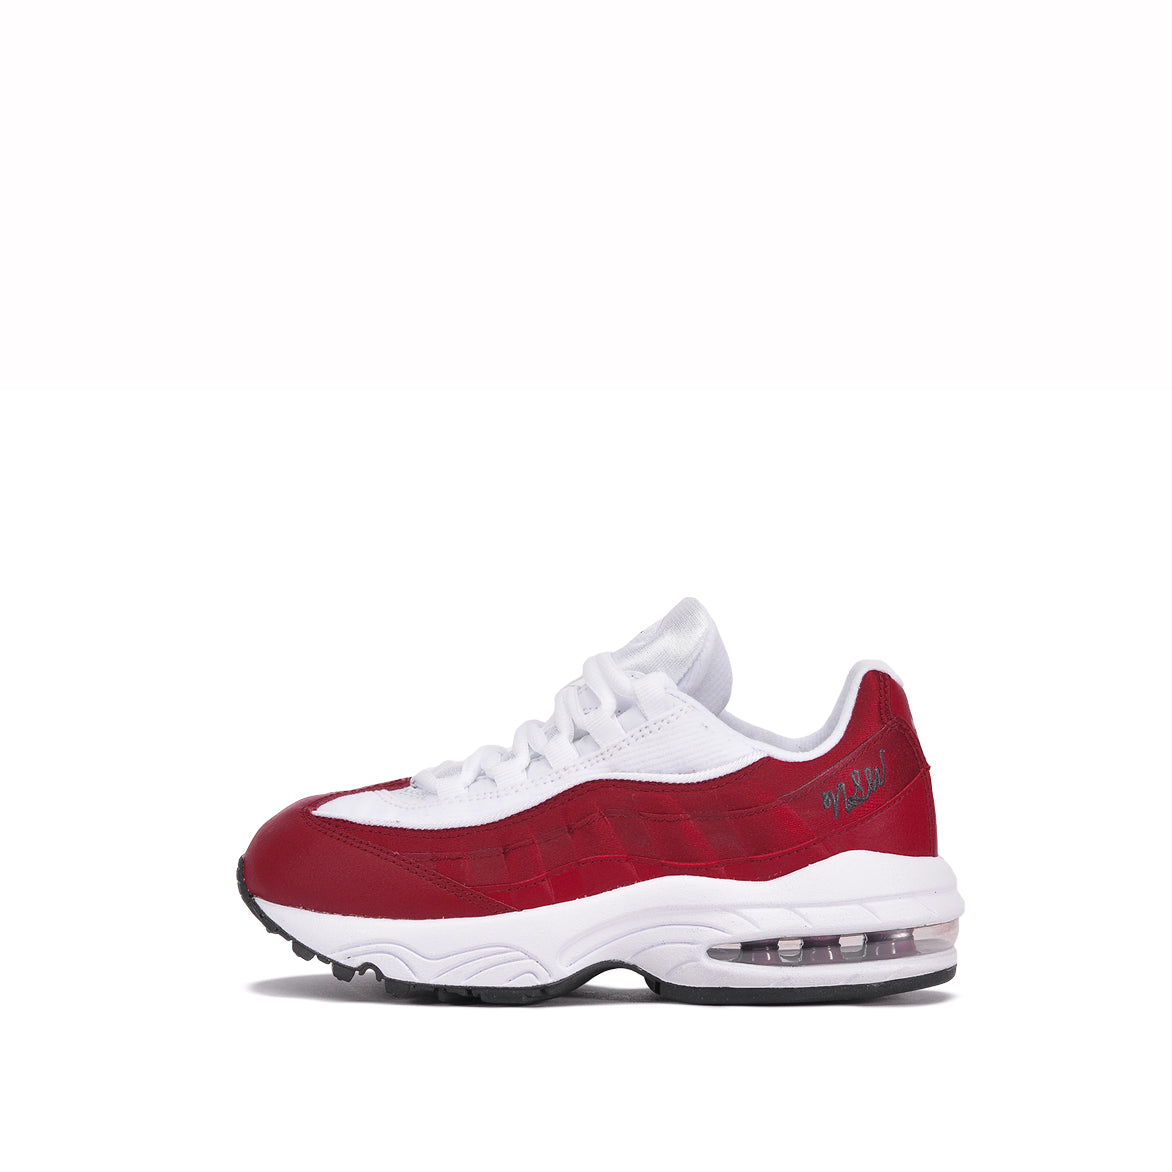 a732a9452a AIR MAX 95 SE (PS) - RED CRUSH | City Blue